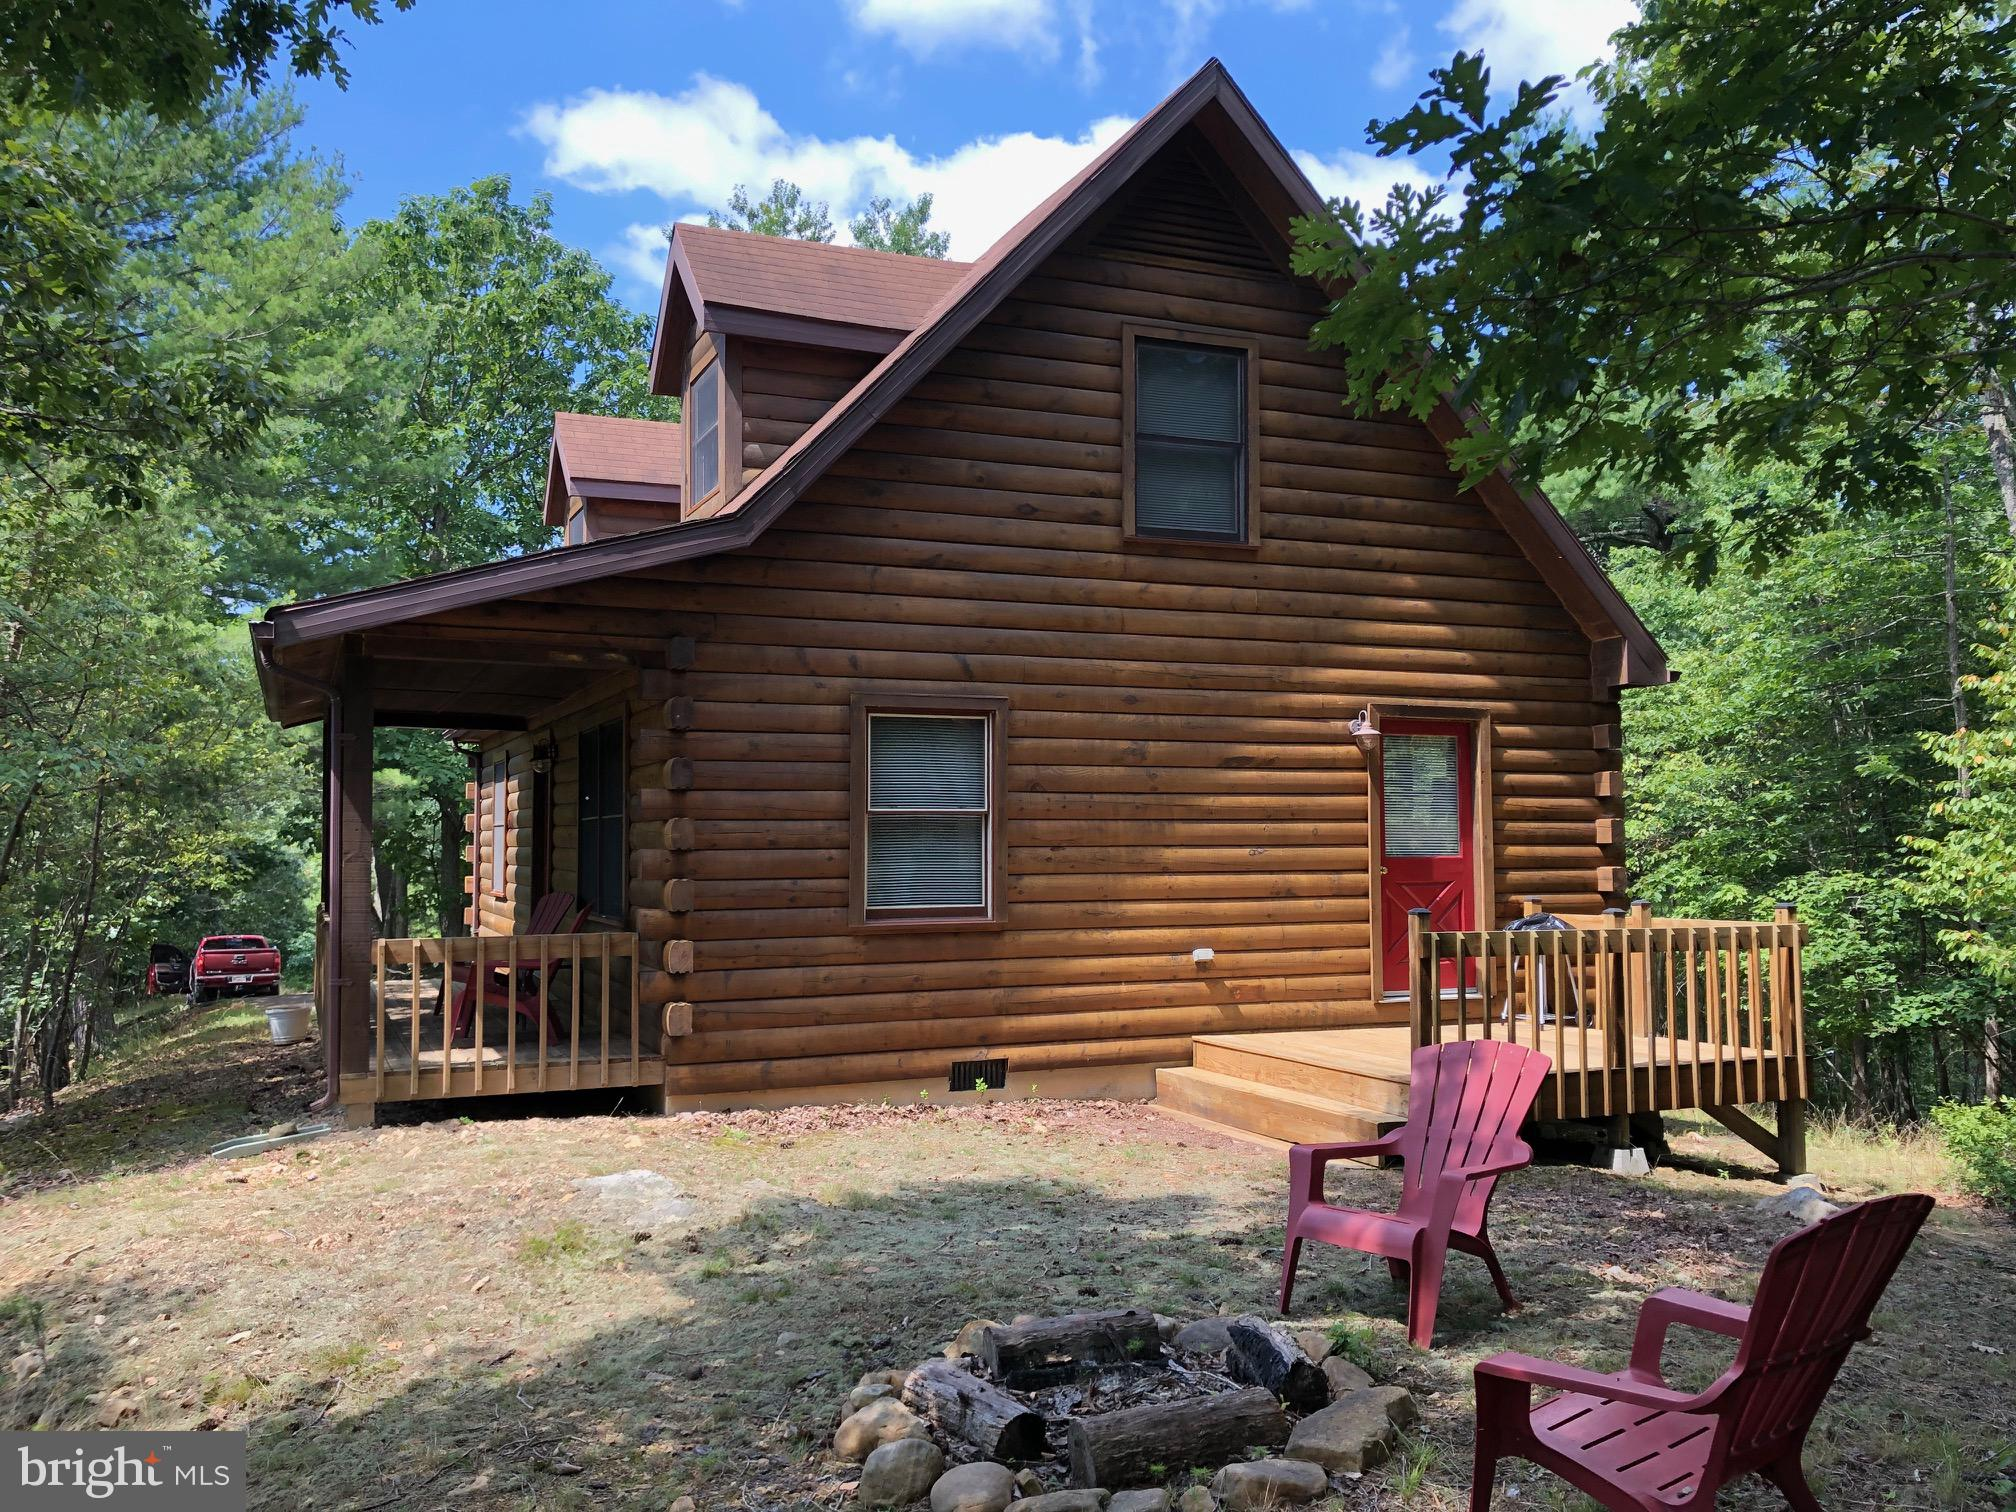 275 CENTER RIDGE ROAD, GREAT CACAPON, WV 25422